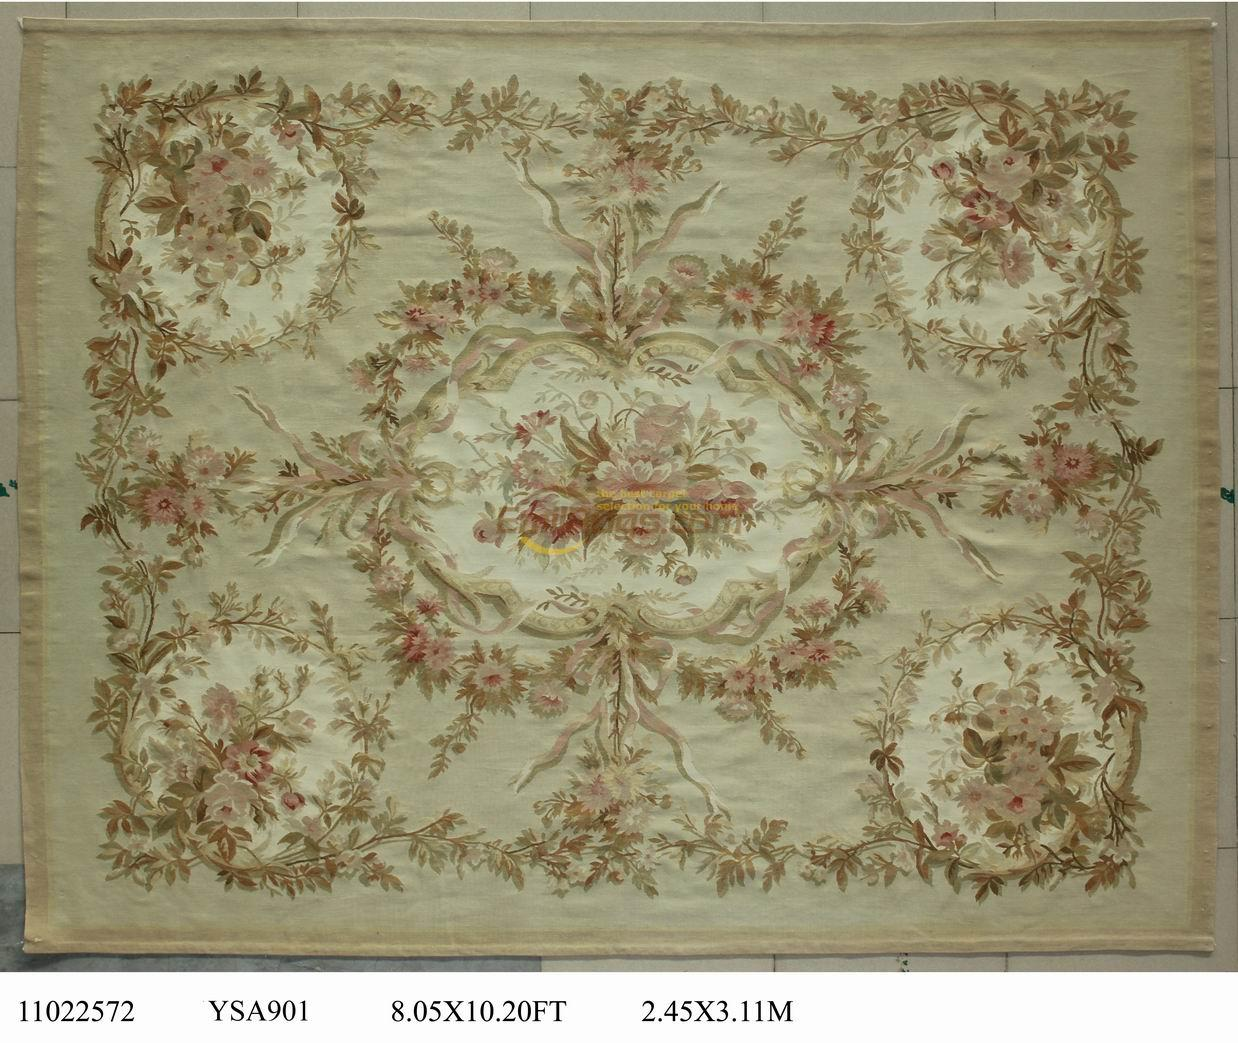 Tapis traditionnel Aubusson Style français tapis ancien Aubusson laine française Antique 19th siècle tapis Aubusson